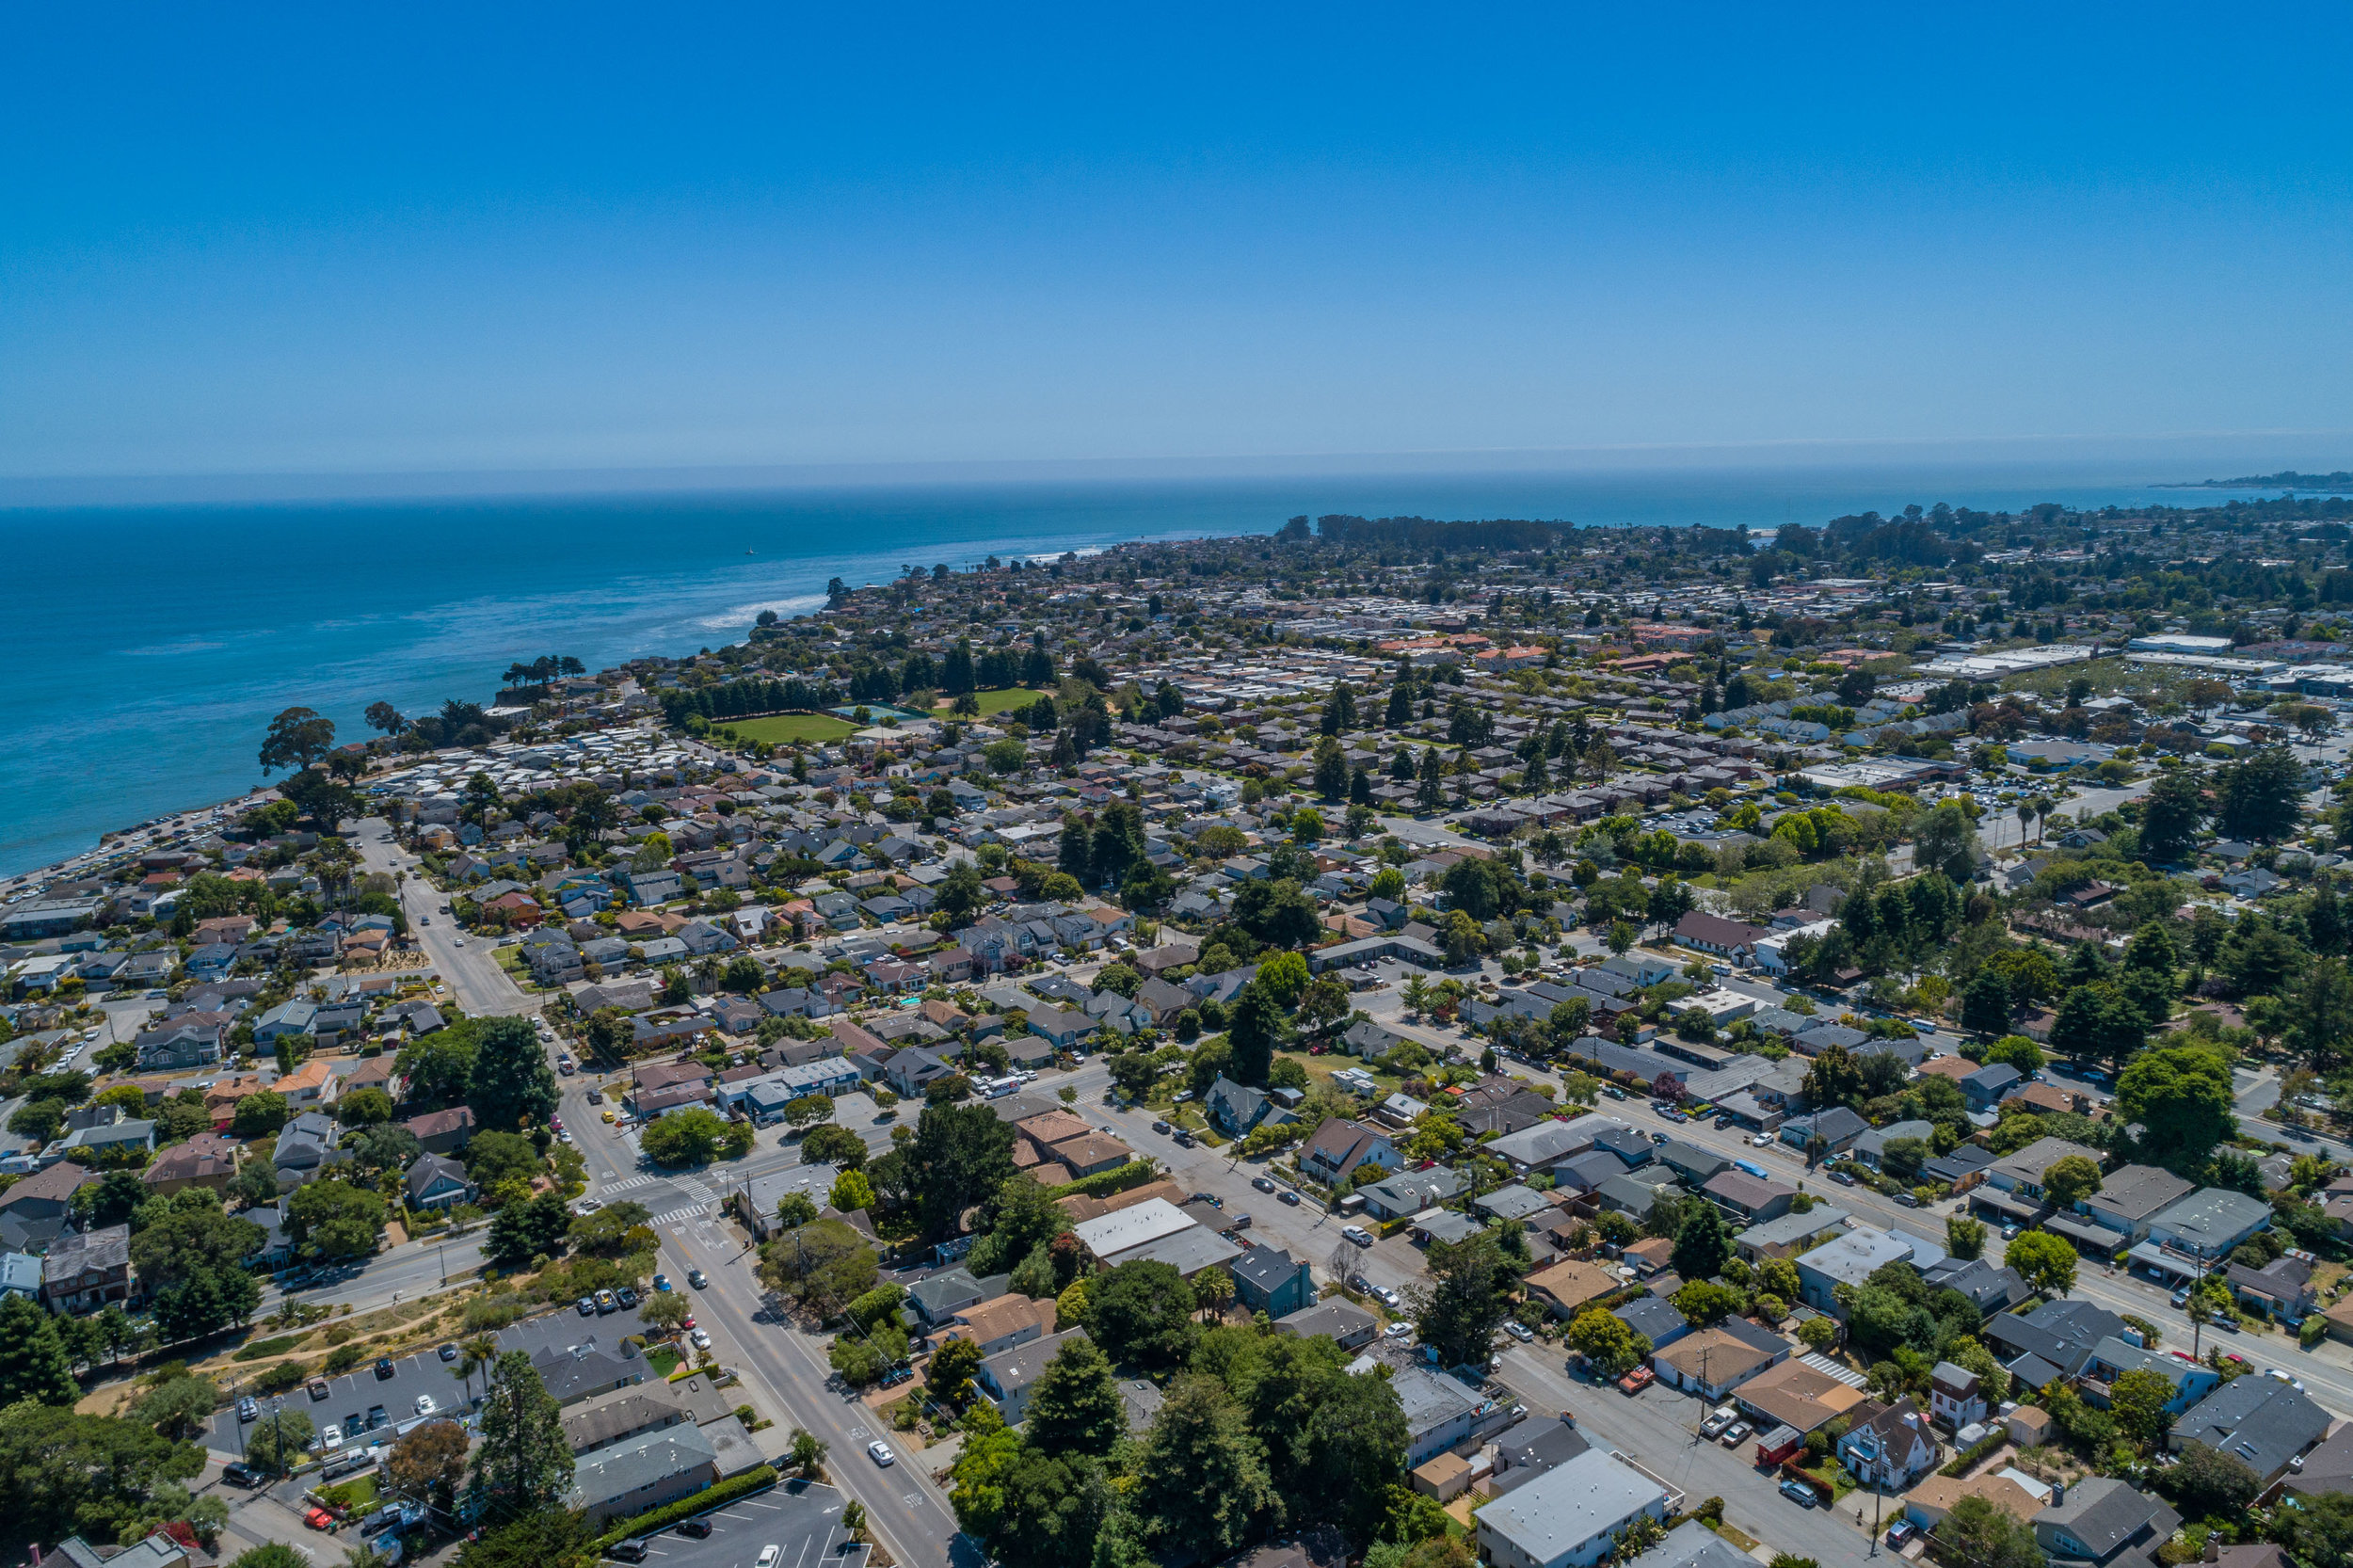 Aerial View of Capitola